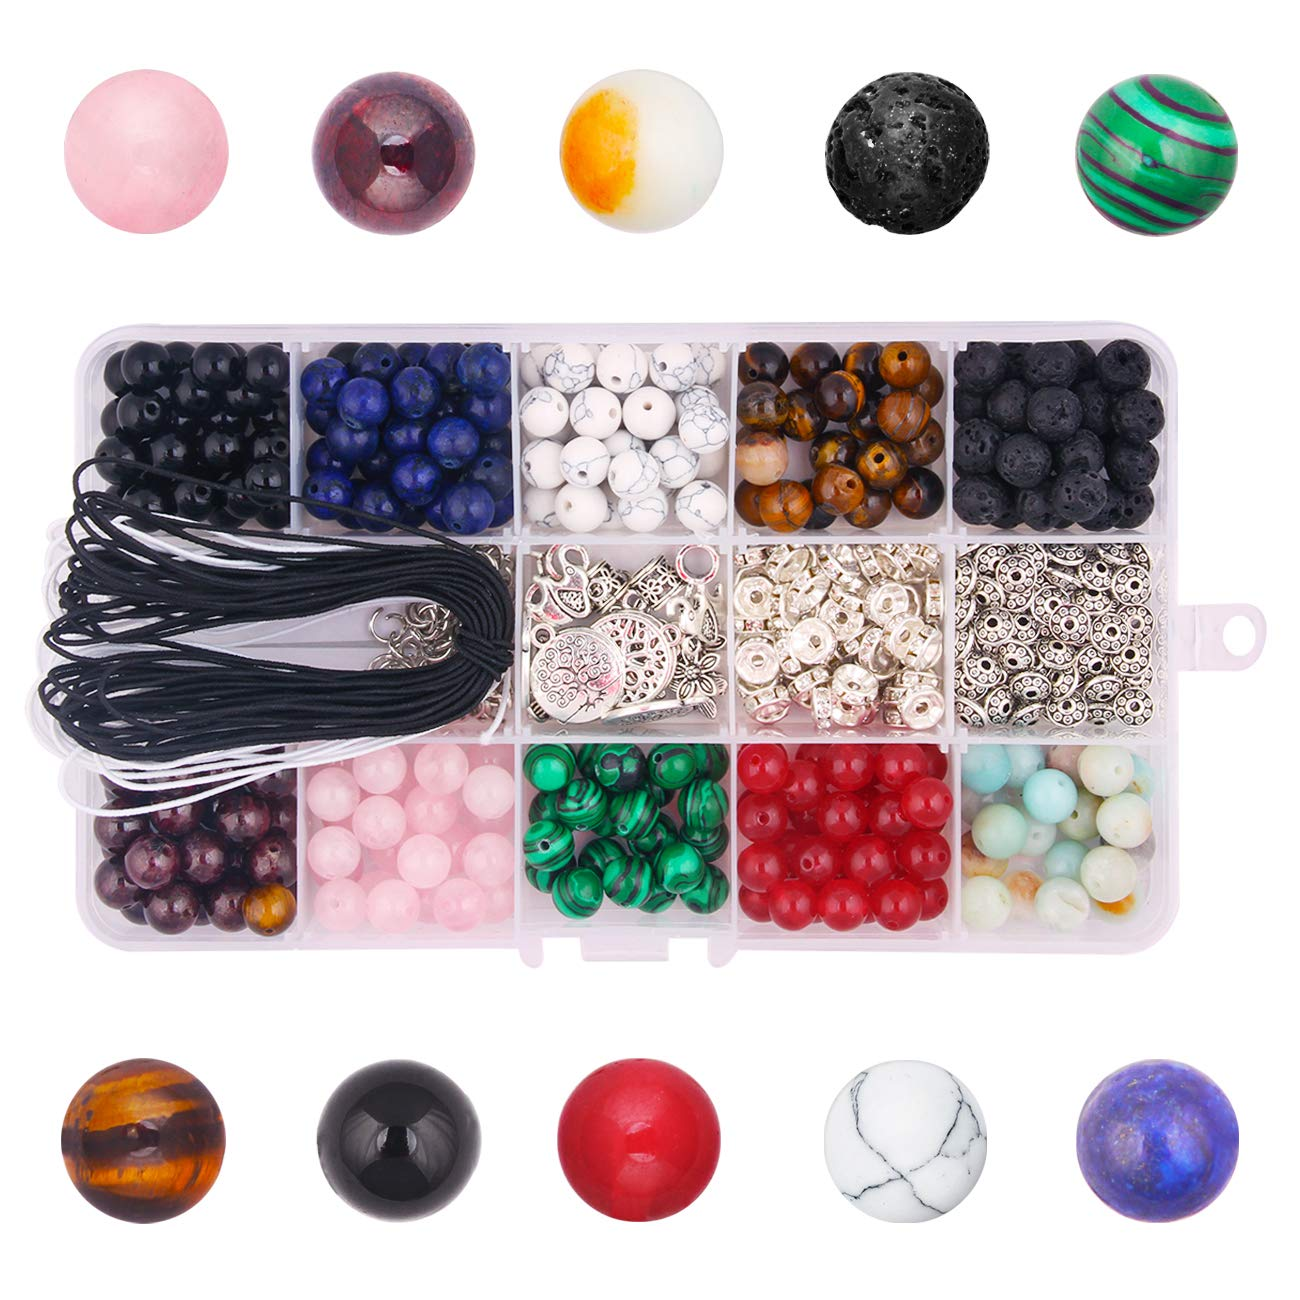 Dushi 418pcs Stone Beads Kits 8mm Loose Beads Gemstone Natural Lava Stone with Accessories for DIY Jewelry Making Dushi Trading Co. Ltd